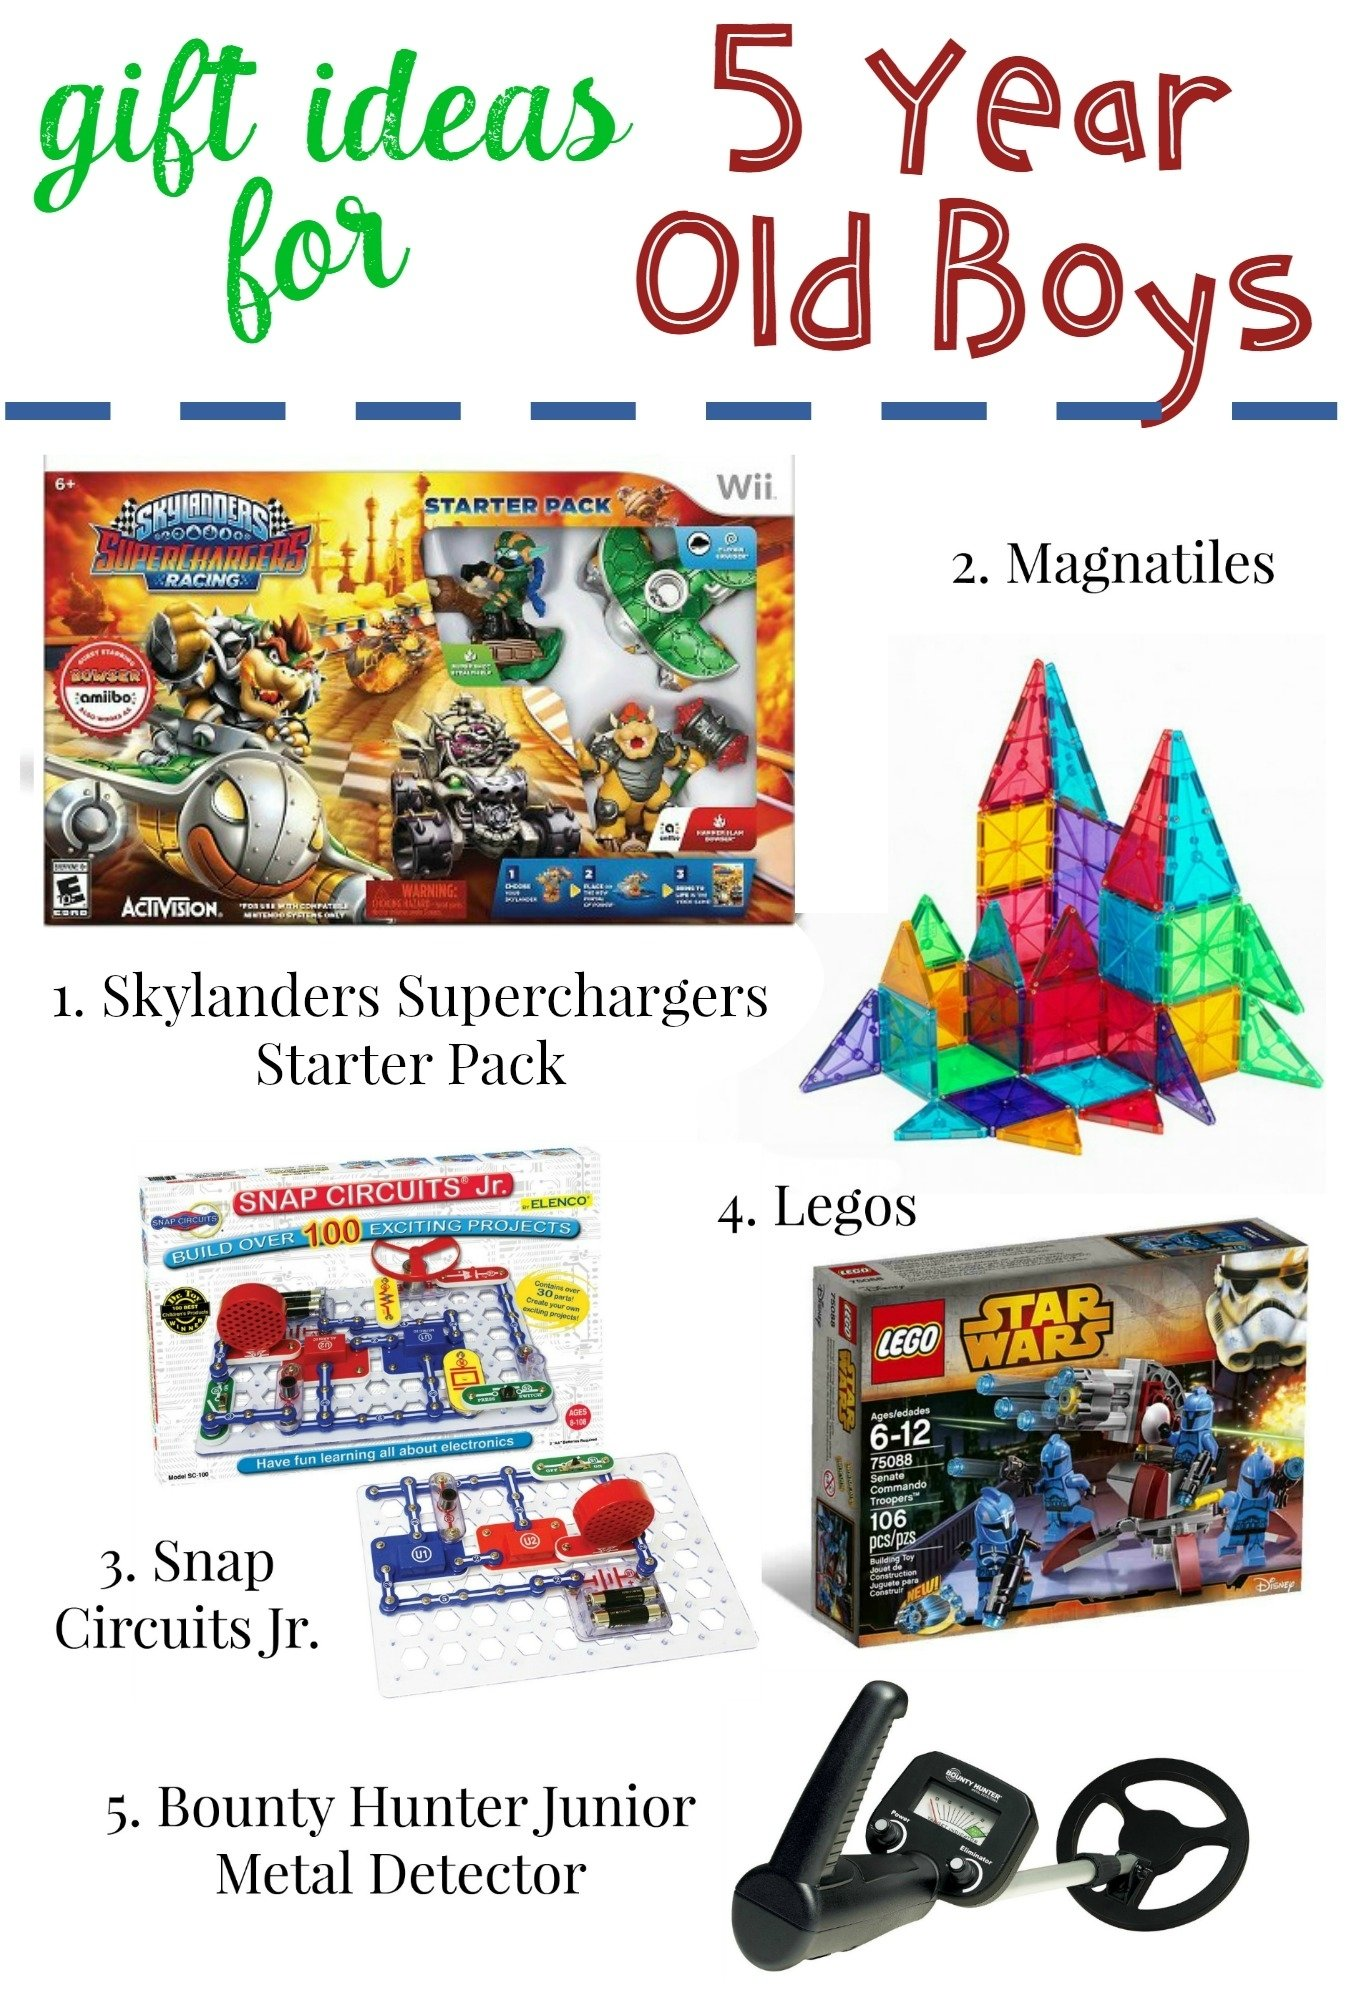 10 Famous Gift Ideas For 6 Year Old Boy gifts for 5 year old boys 7 2020